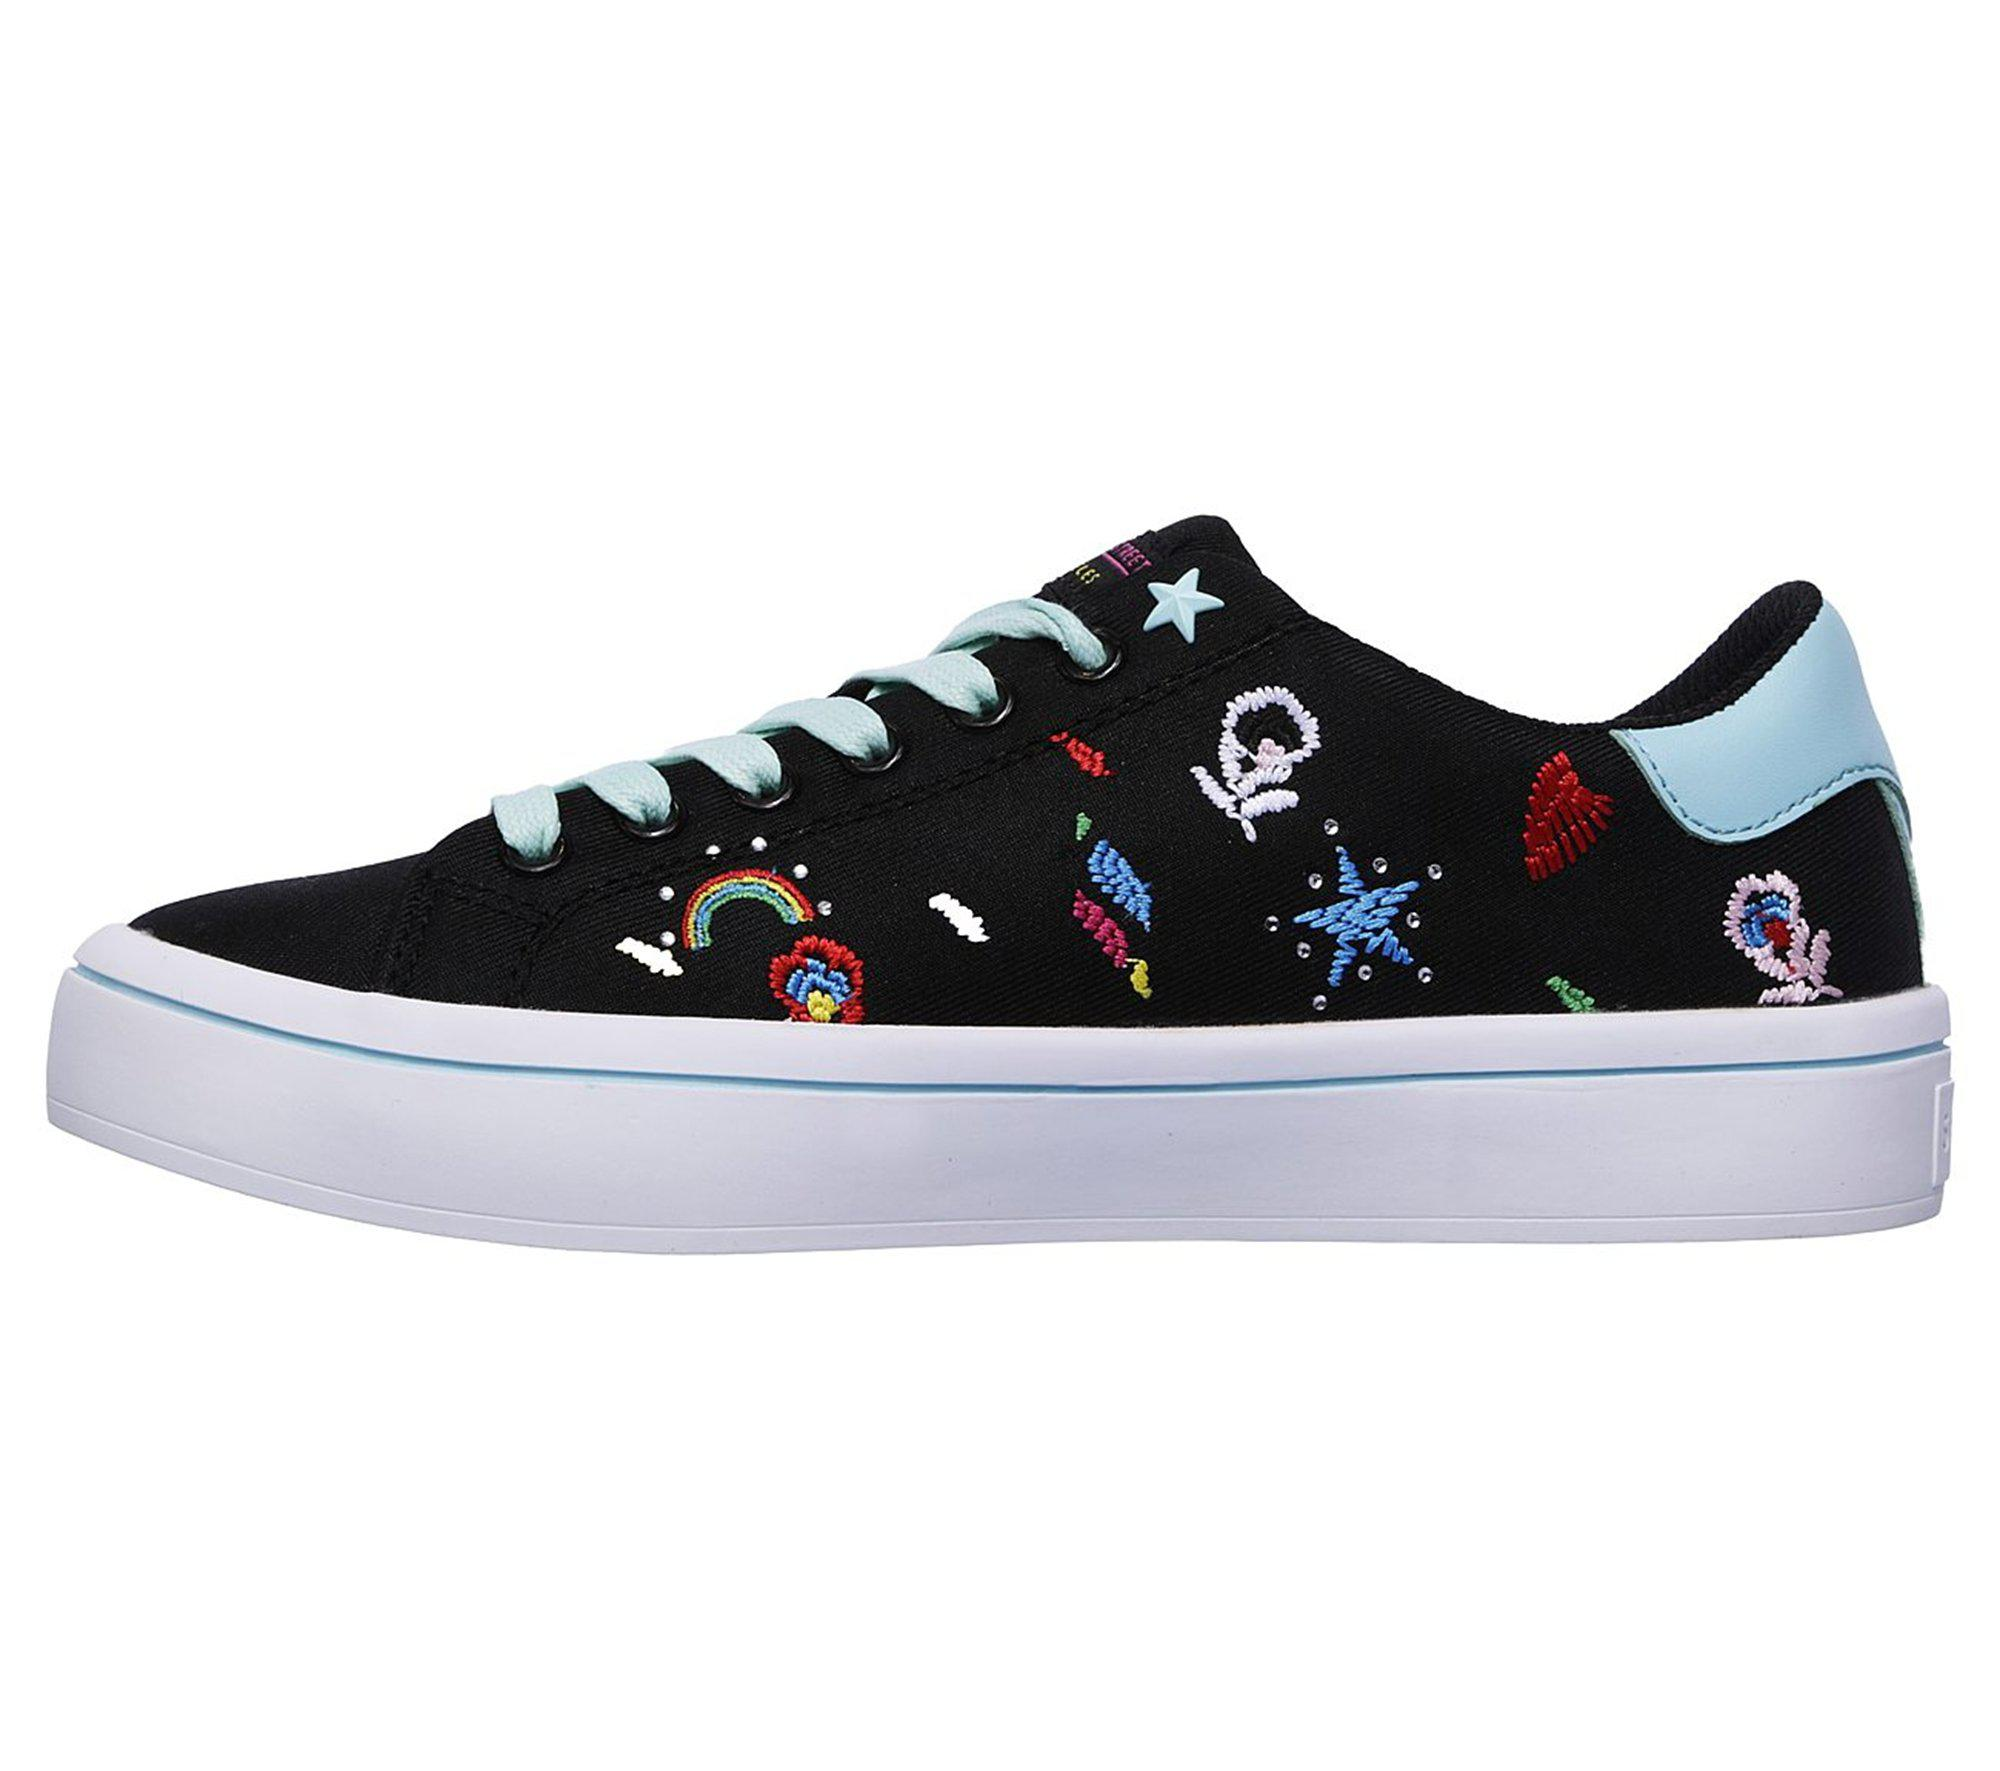 Cheap Good Selling Skechers Hi-Lites Doodle Book Sneaker(Women's) -Black/Multi Pay With Paypal Sale Online Outlet Classic Affordable zjapc